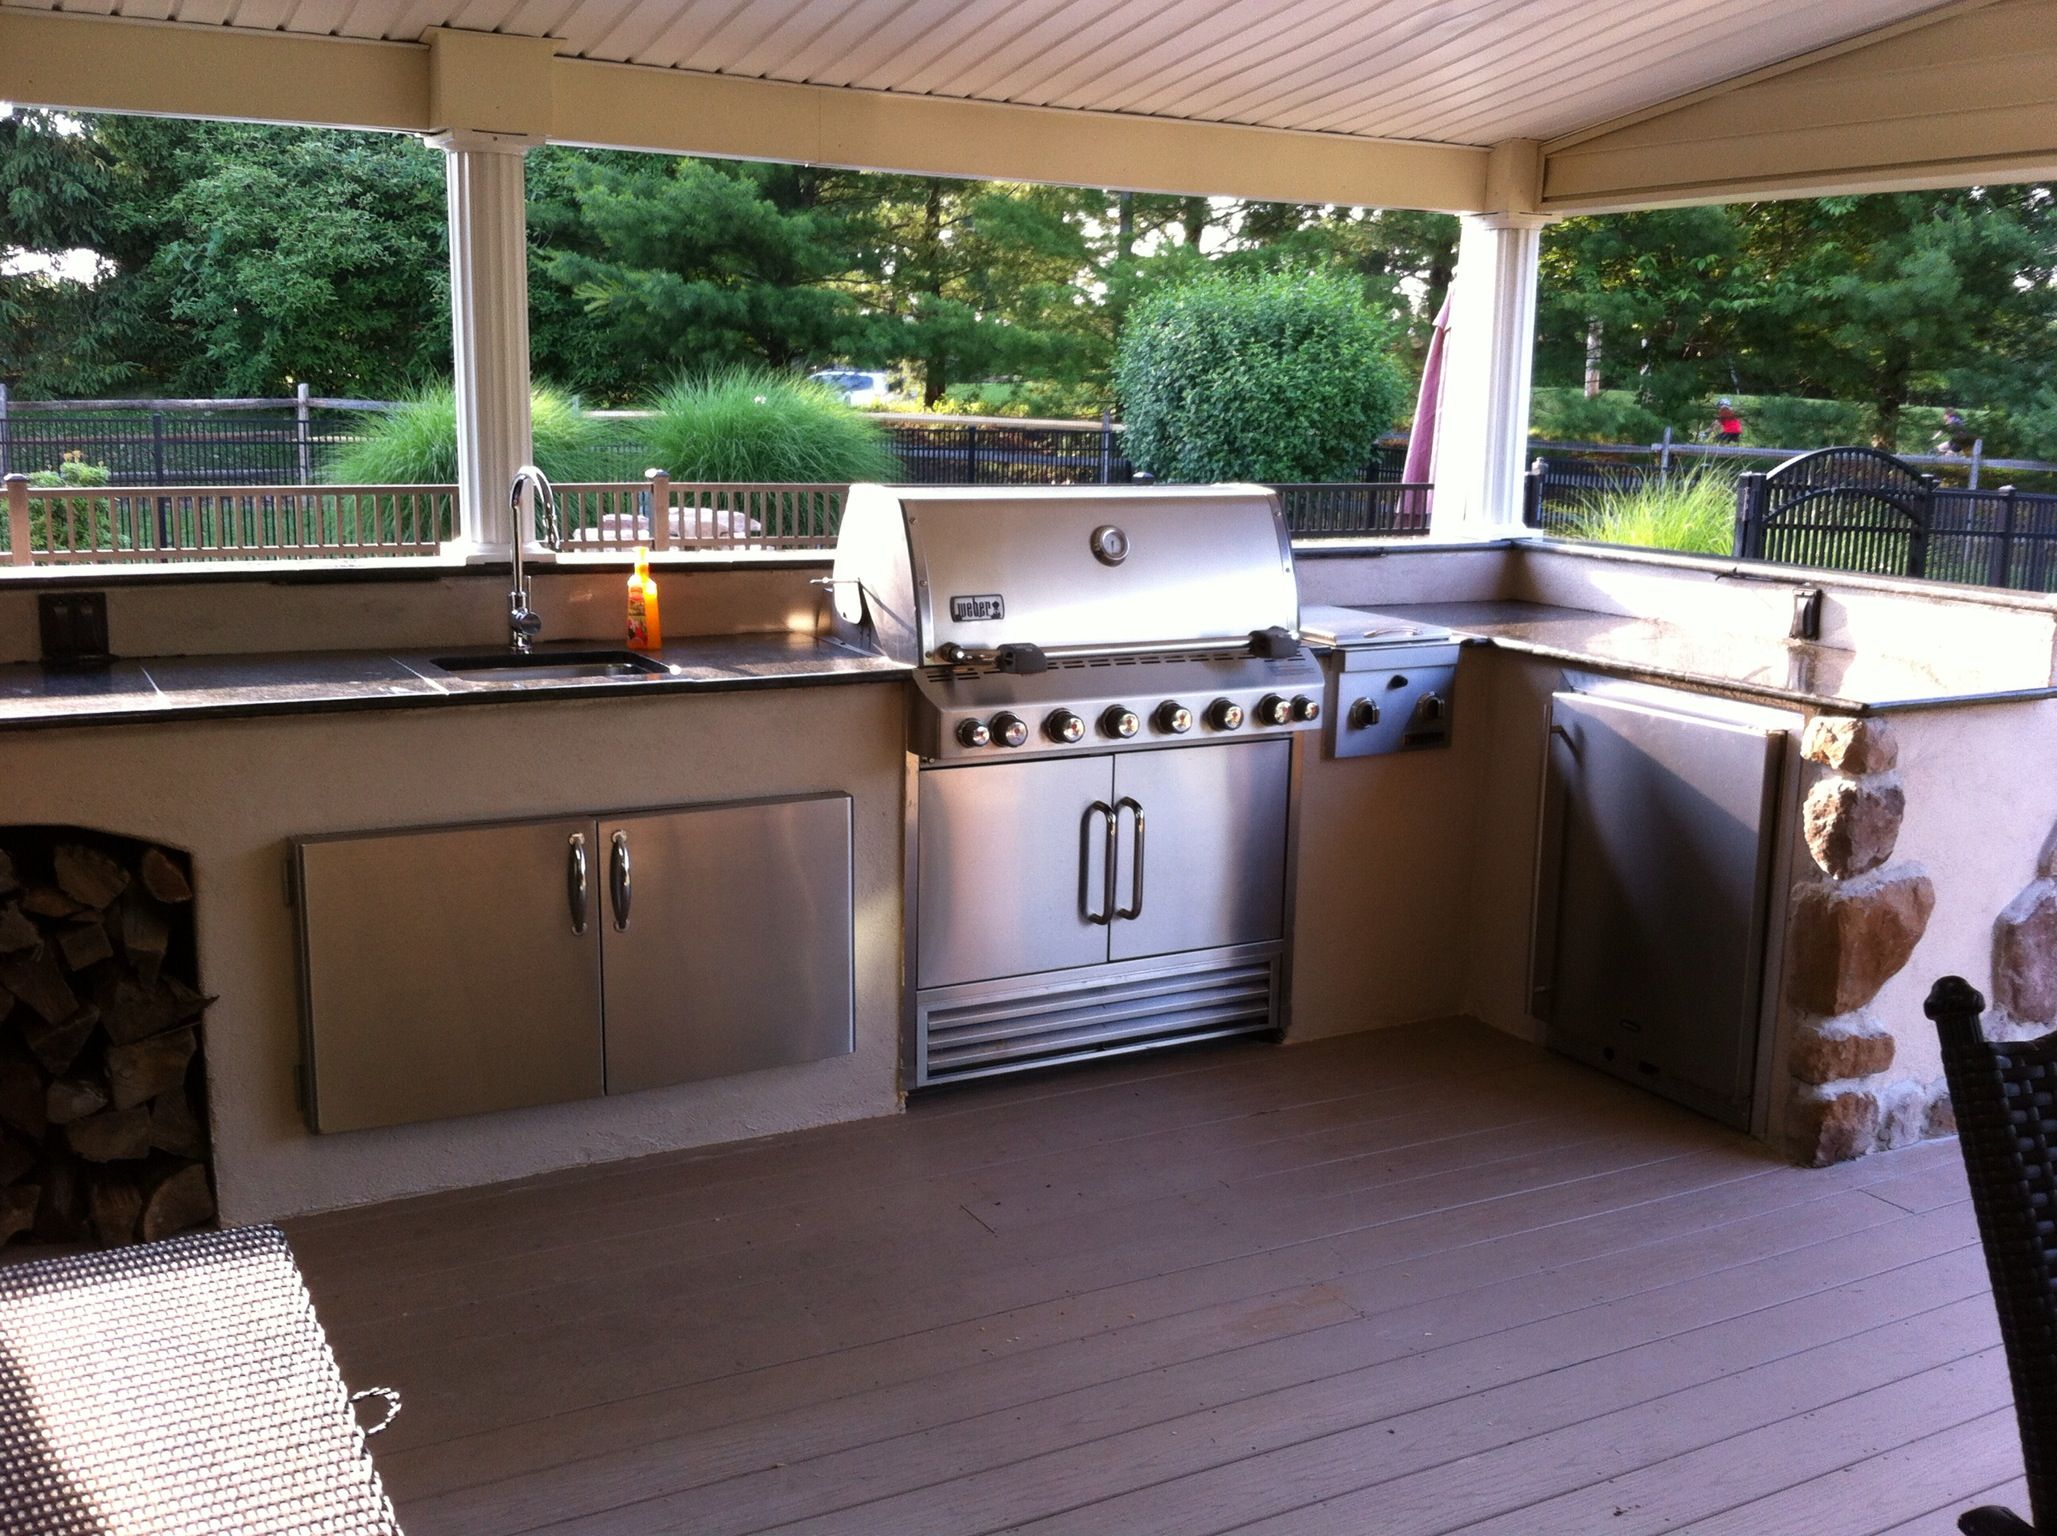 Our outdoor kitchen on a budget! Bought everything off